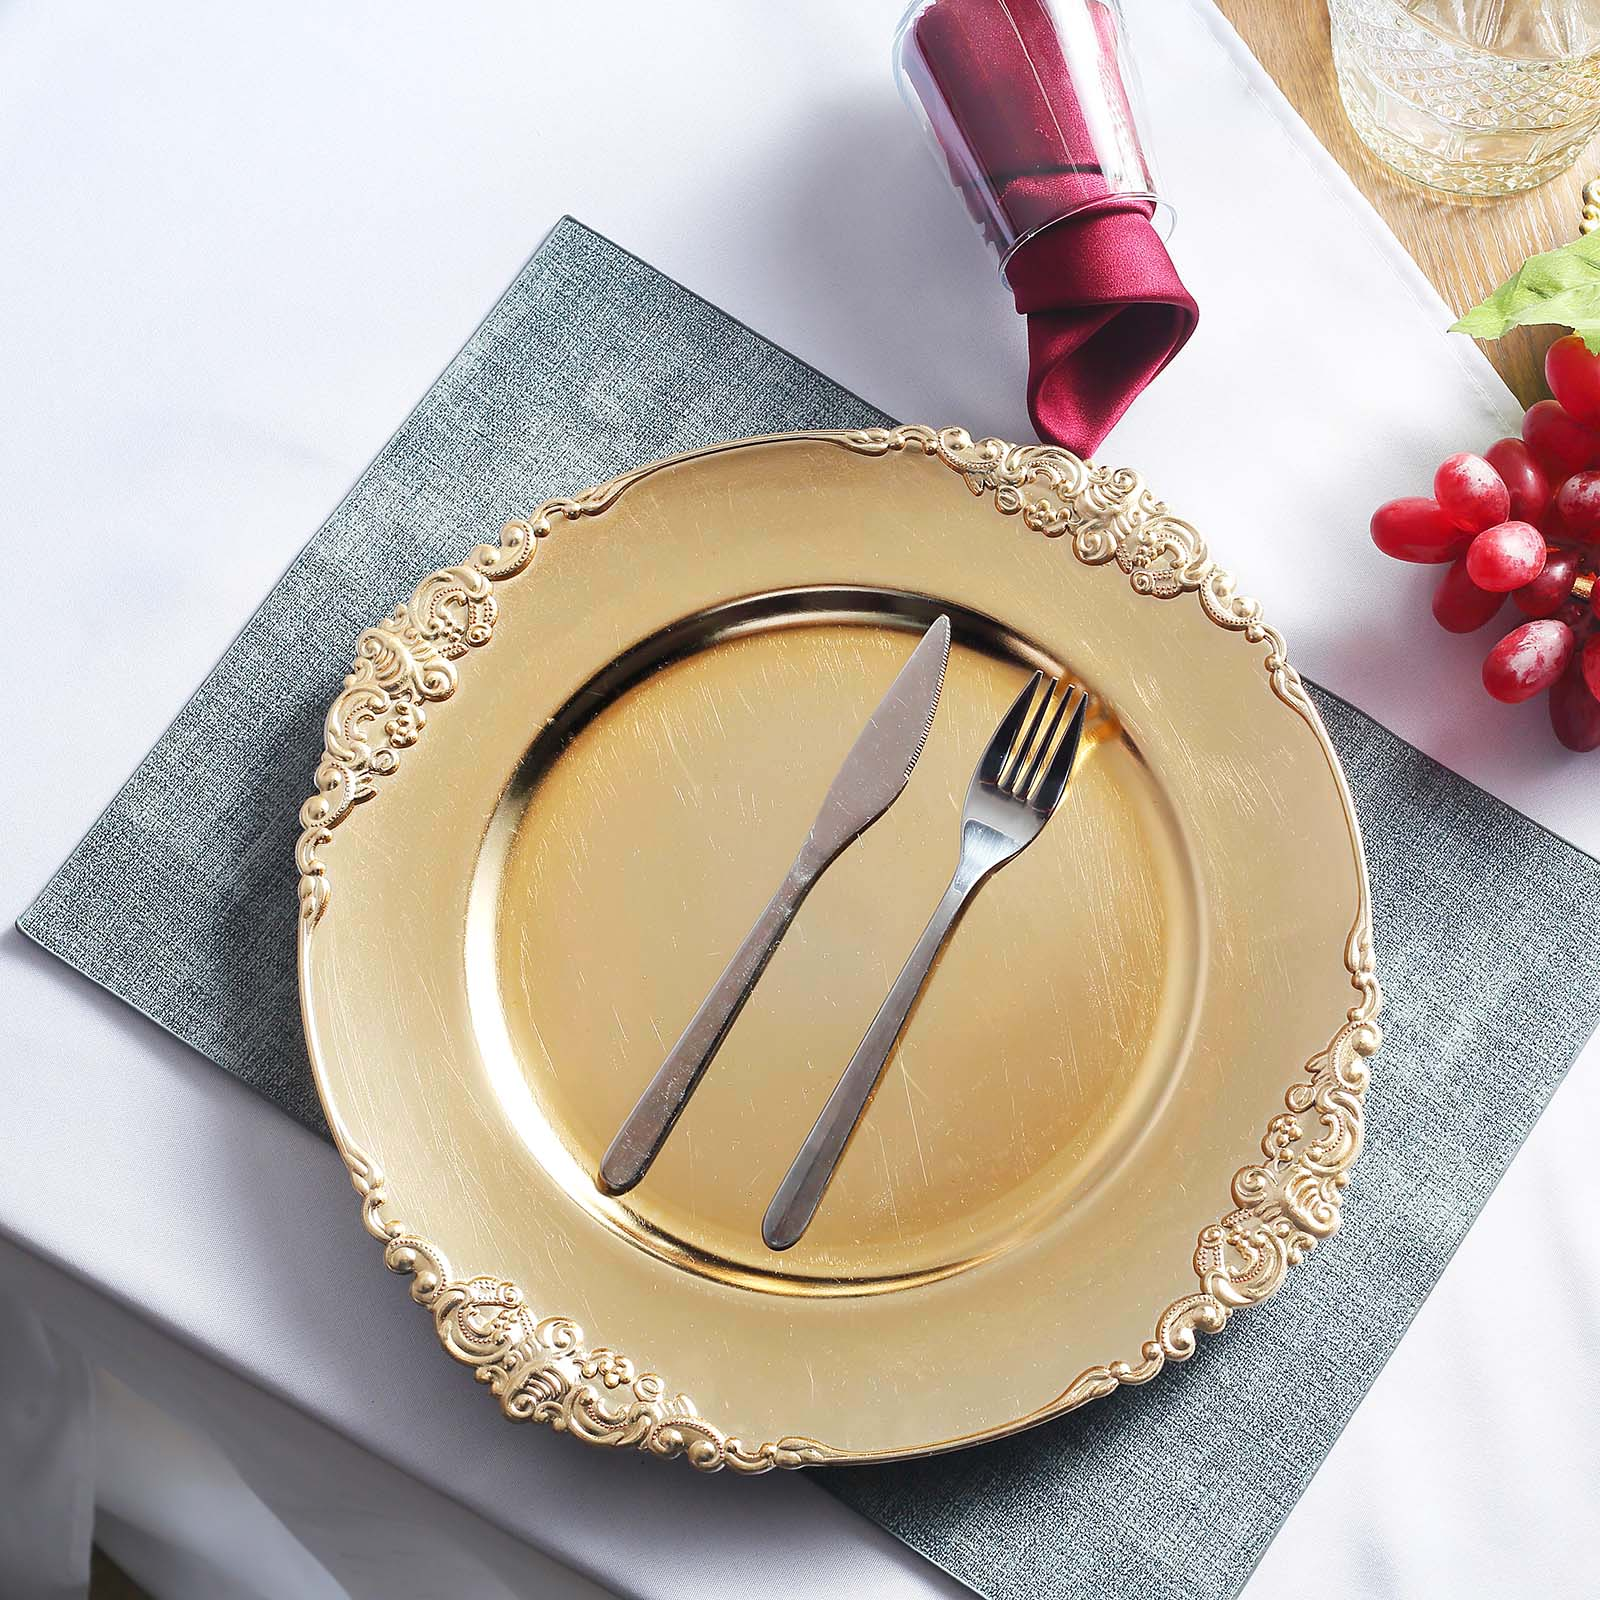 Efavormart 6 Pack 13 Round Clear Plastic Charger Plates With Gold Scalloped Edge For Wedding Decor